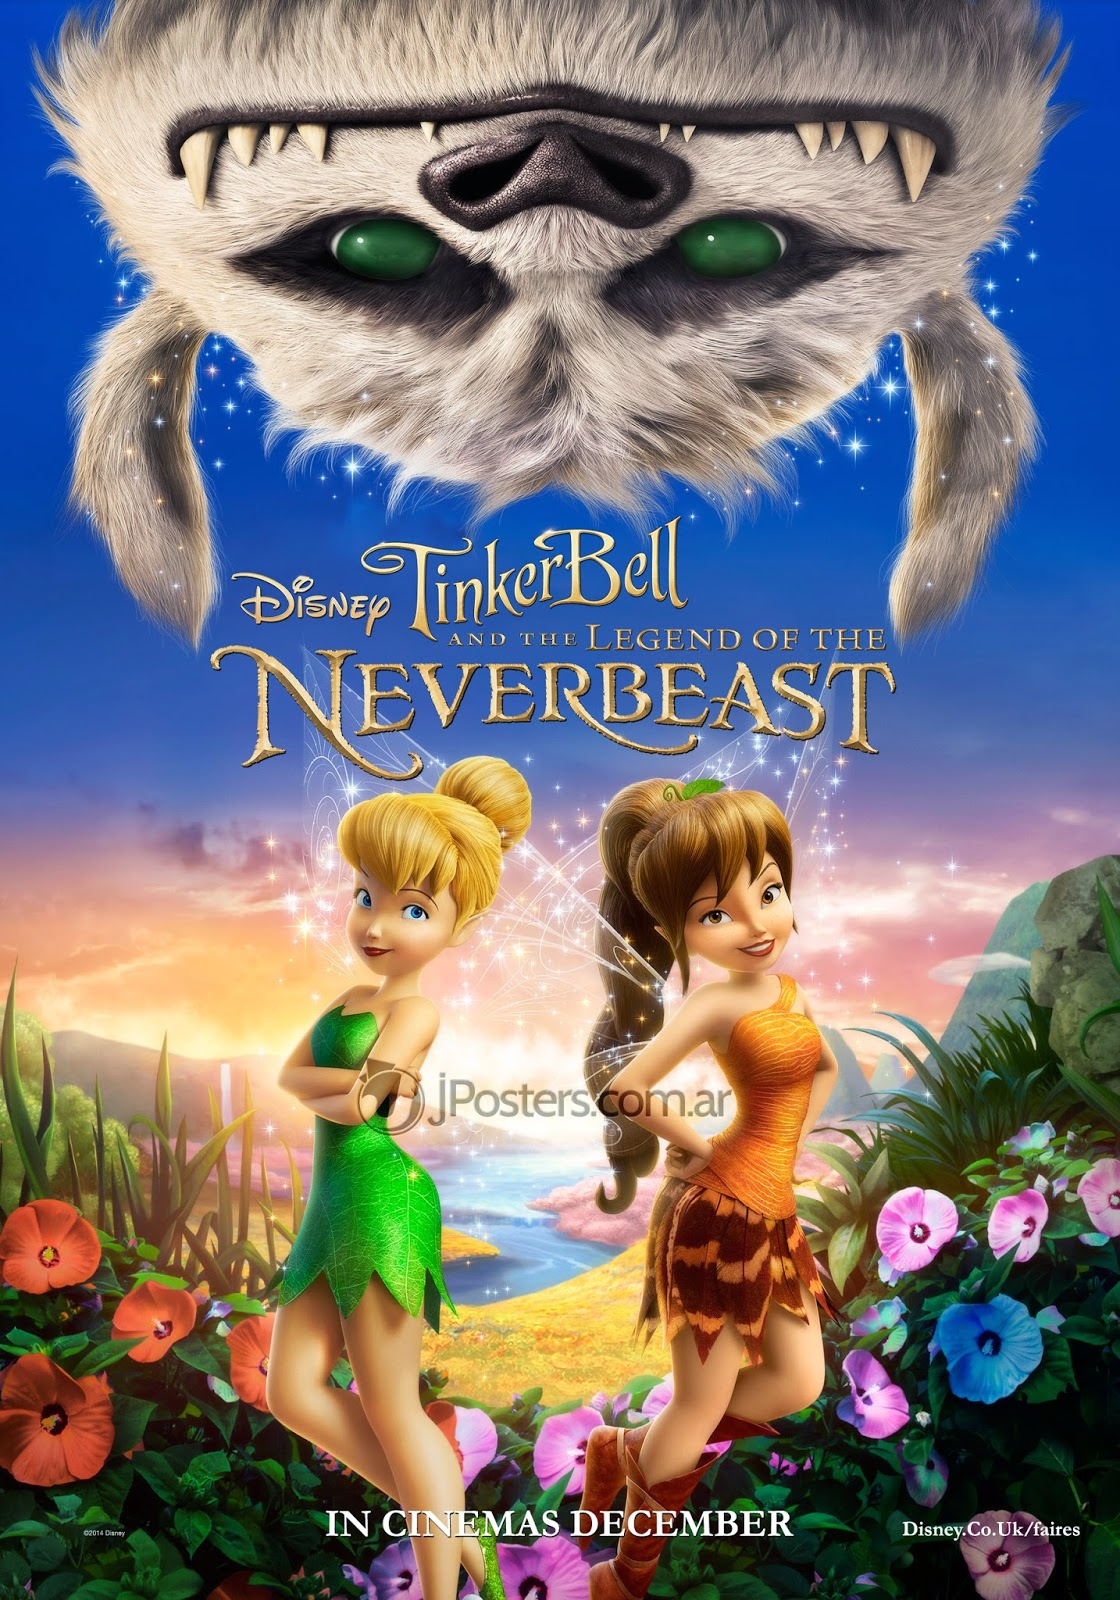 fairies movies images - photo #12